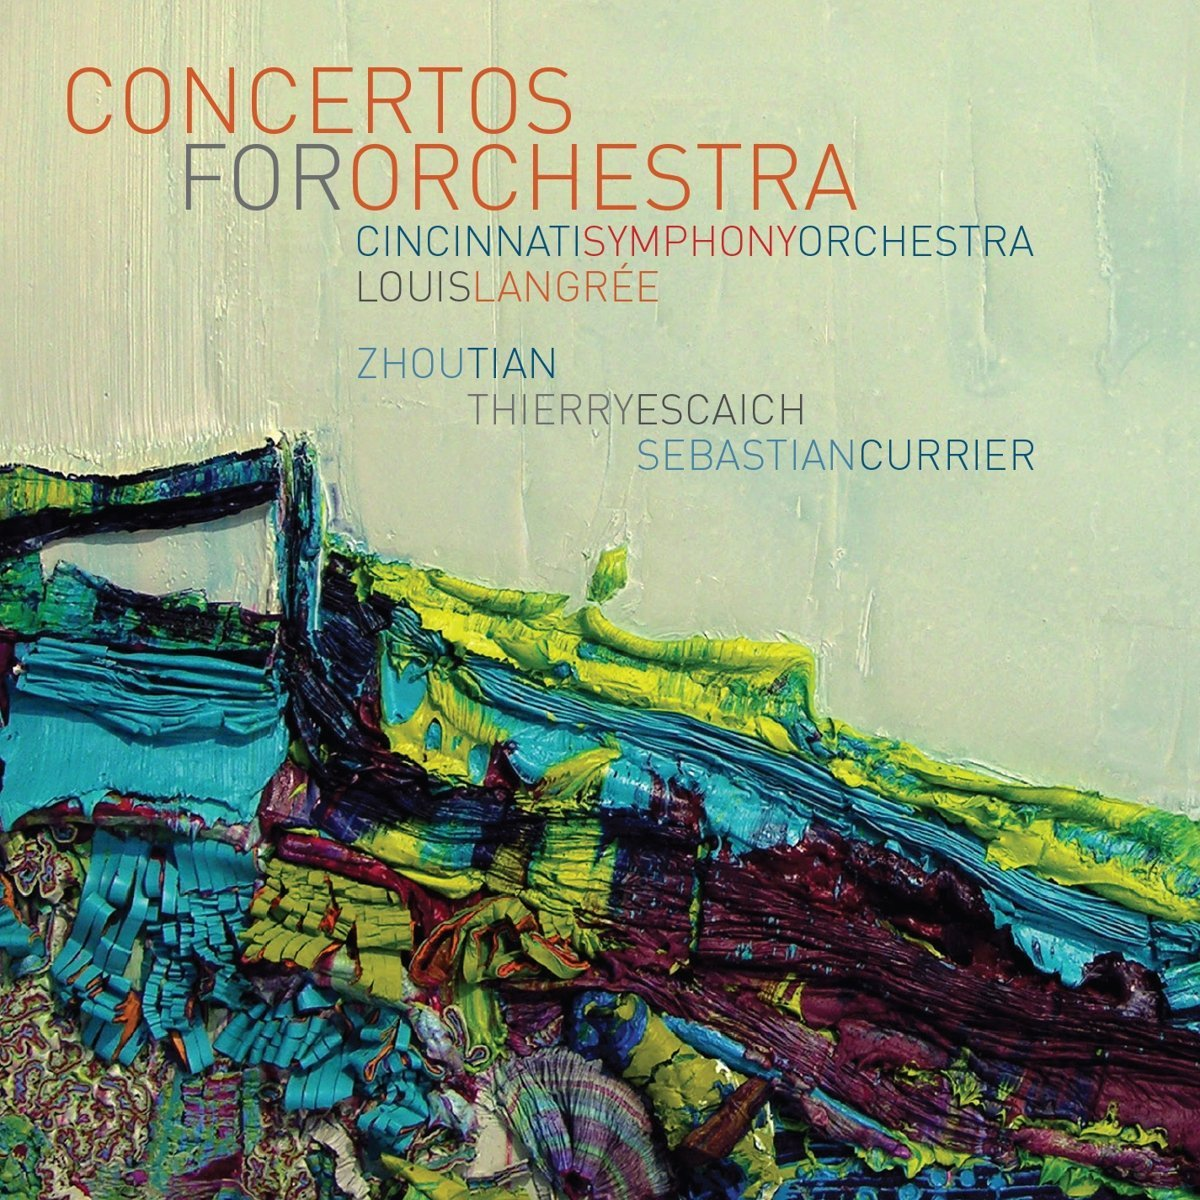 Concertos for Orchestra – music by Zhou Tian, Thierry Escaich and Sebastian Currier Cincinnati Symphony Orchestra/Louis Langrée